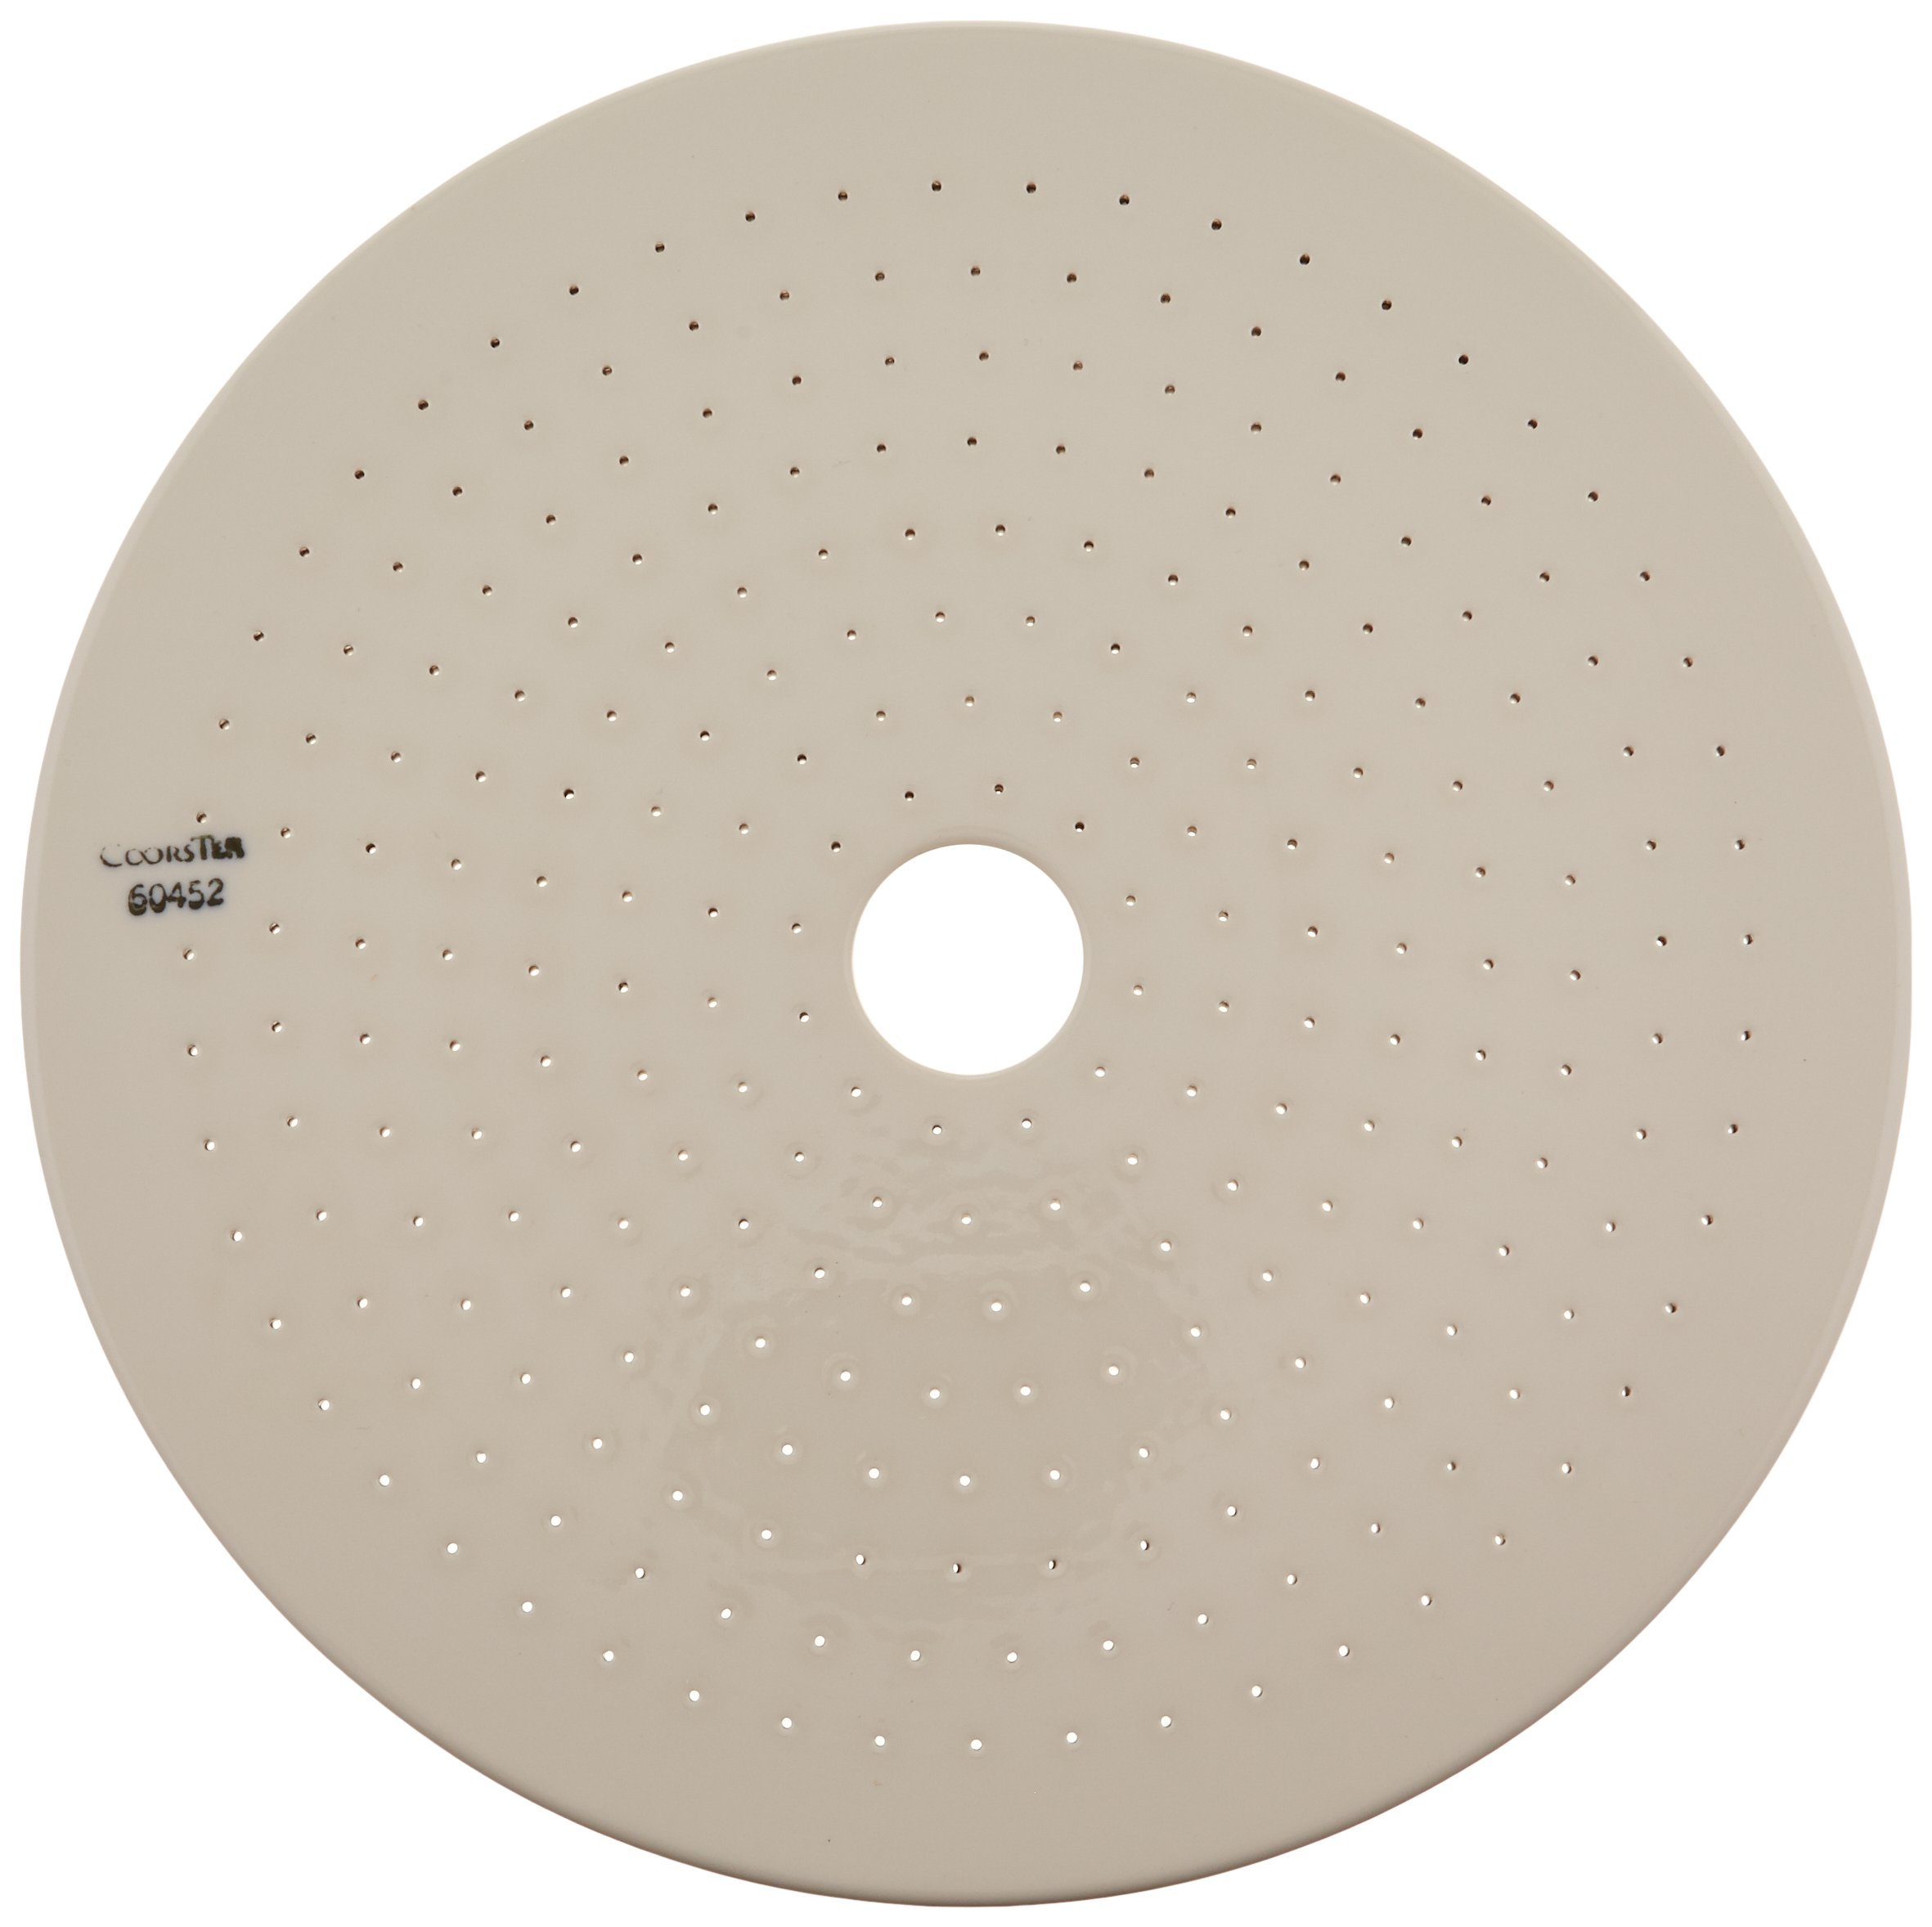 CoorsTek 60452 Porcelain Ceramic Desiccator Plate with Large Hole in Center, Numerous 1mm Perforations, 190mm OD